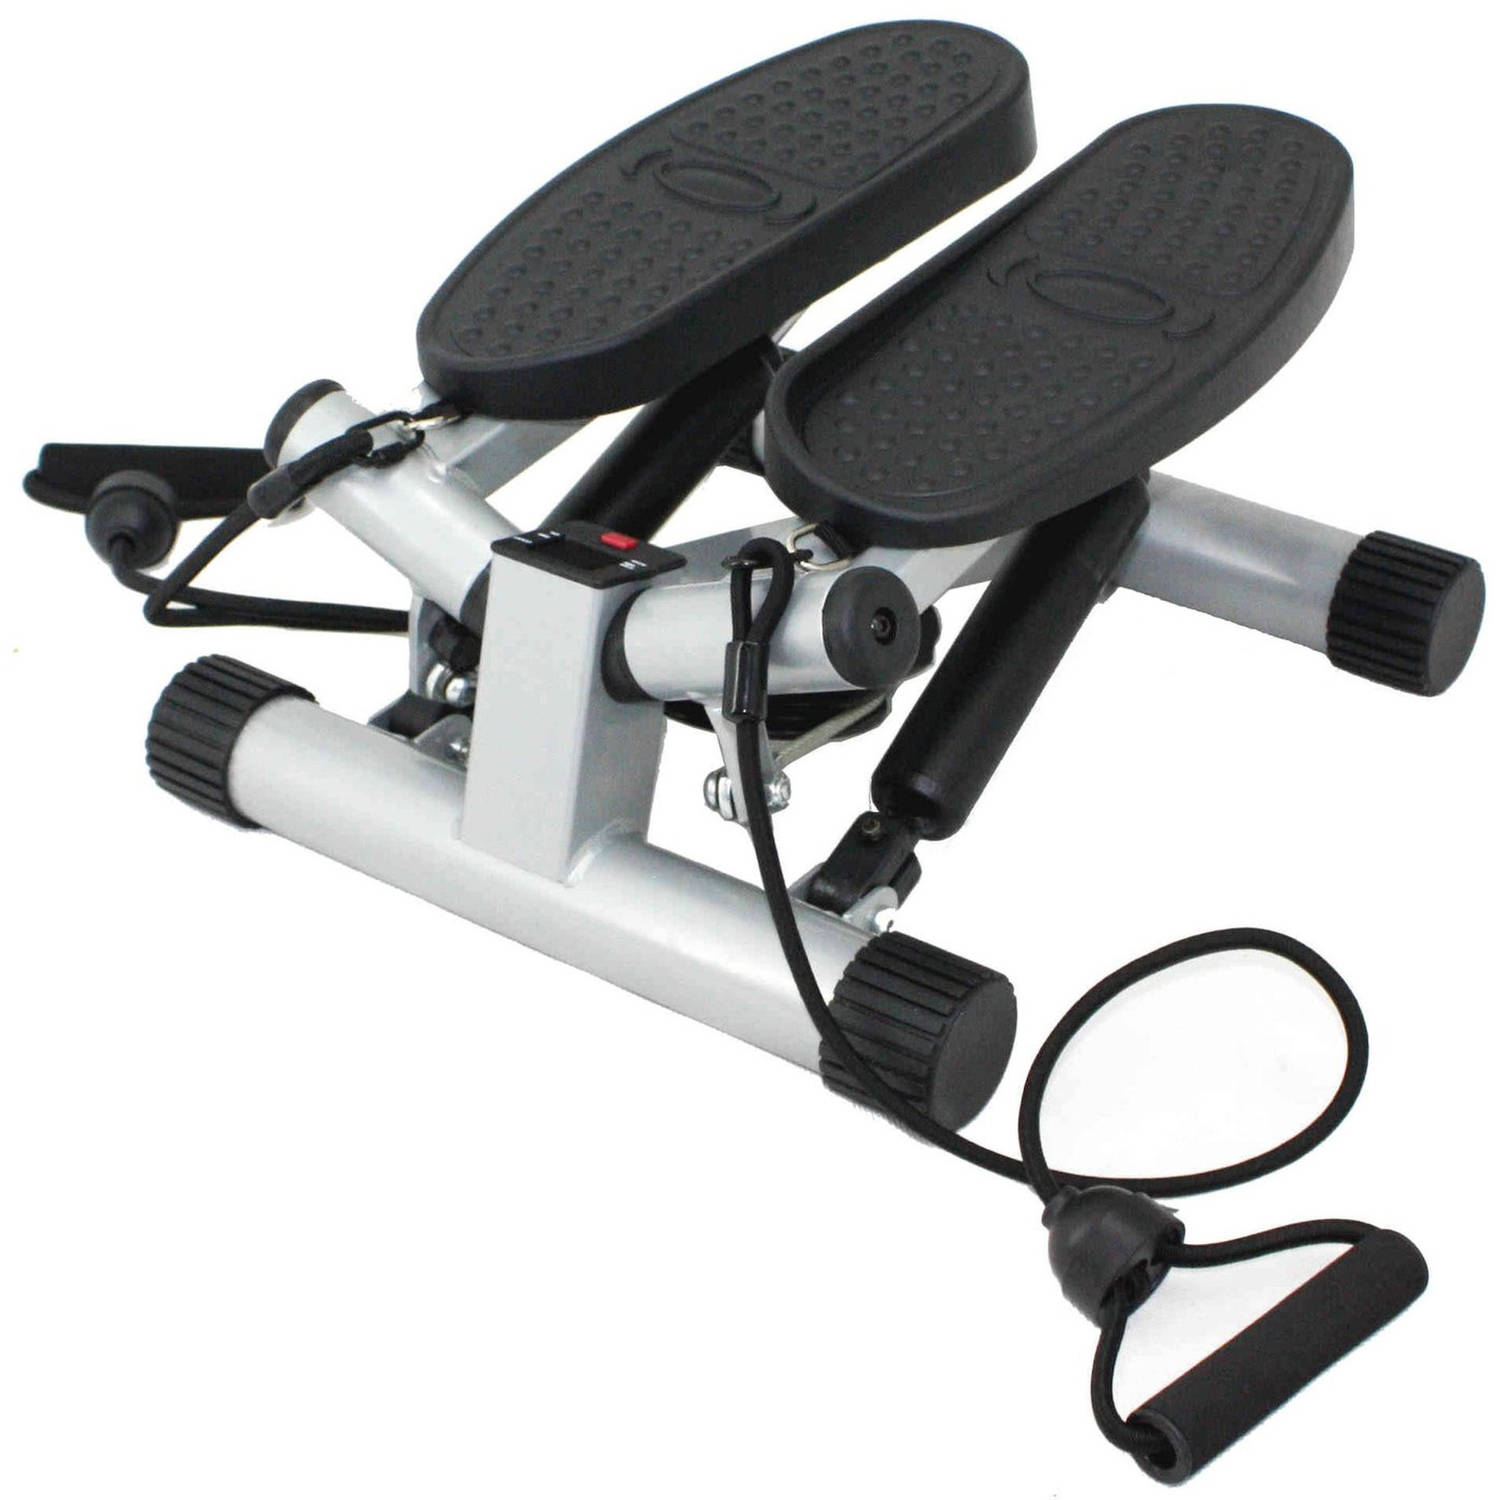 Sunny Health & Fitness Twisting Stair Stepper Step Machine w/ Resistance Bands and LCD Monitor - NO. 068